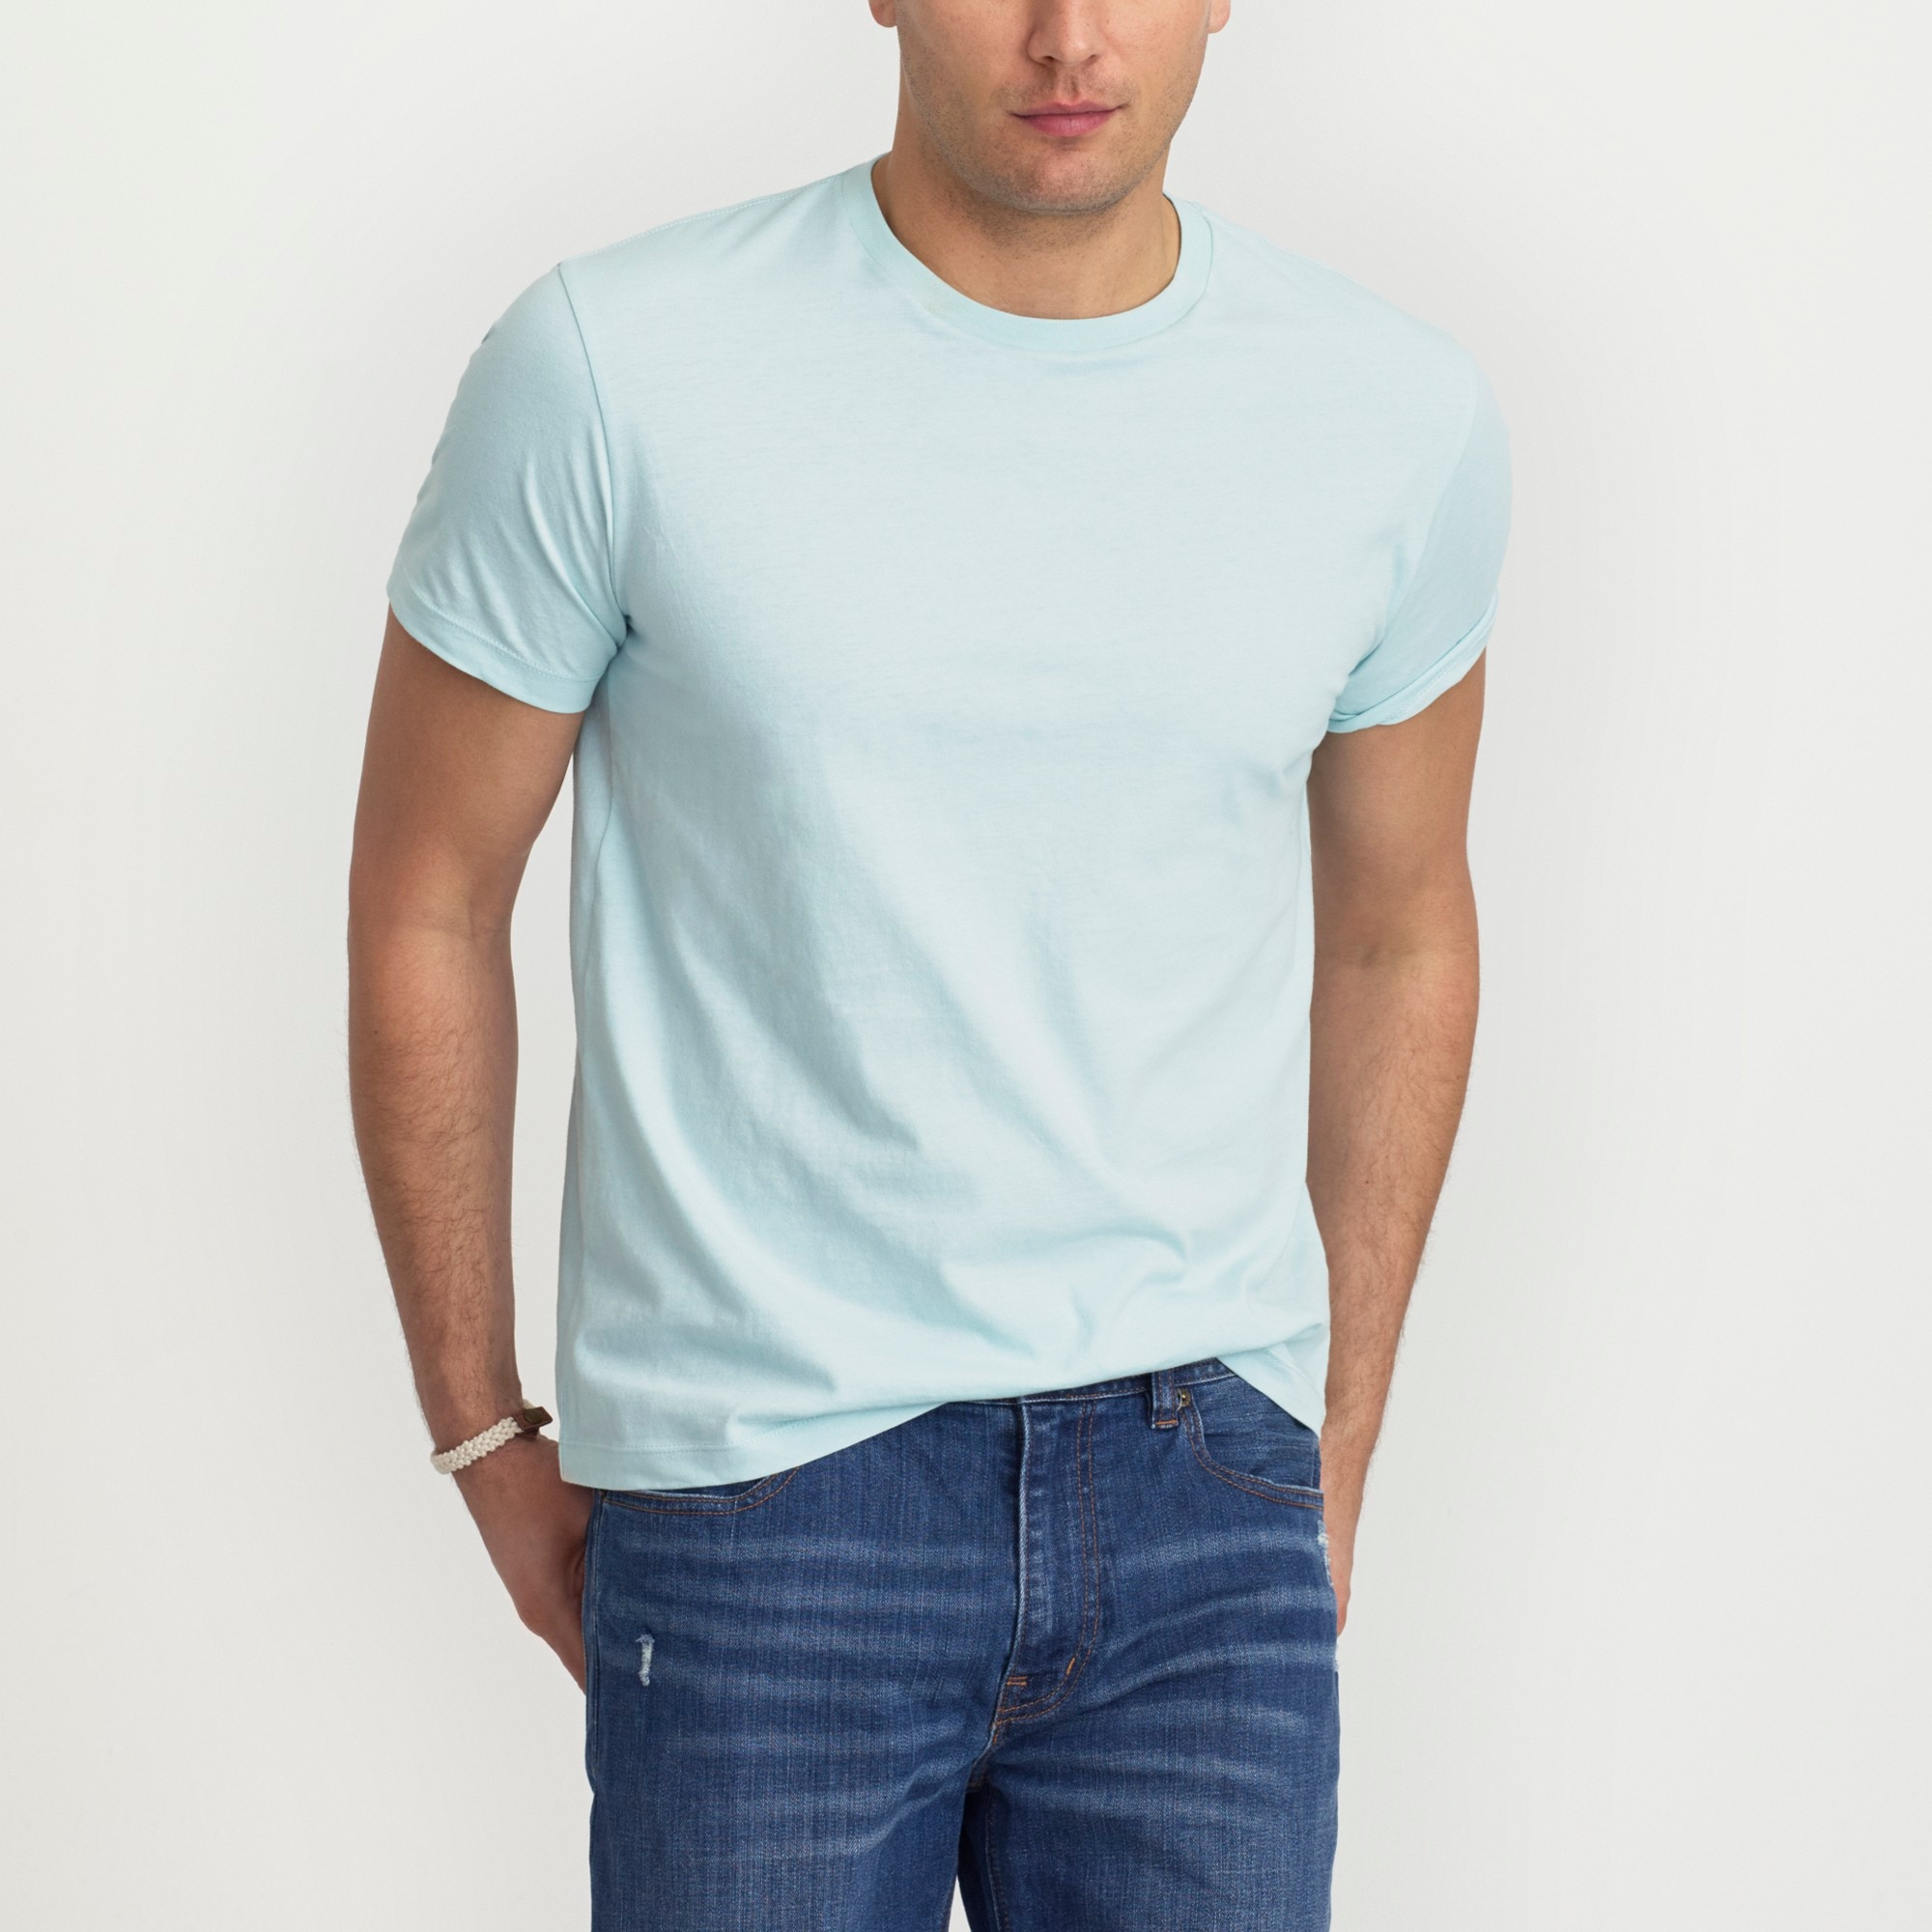 Image 1 for J.Crew Mercantile slim Broken-in T-shirt